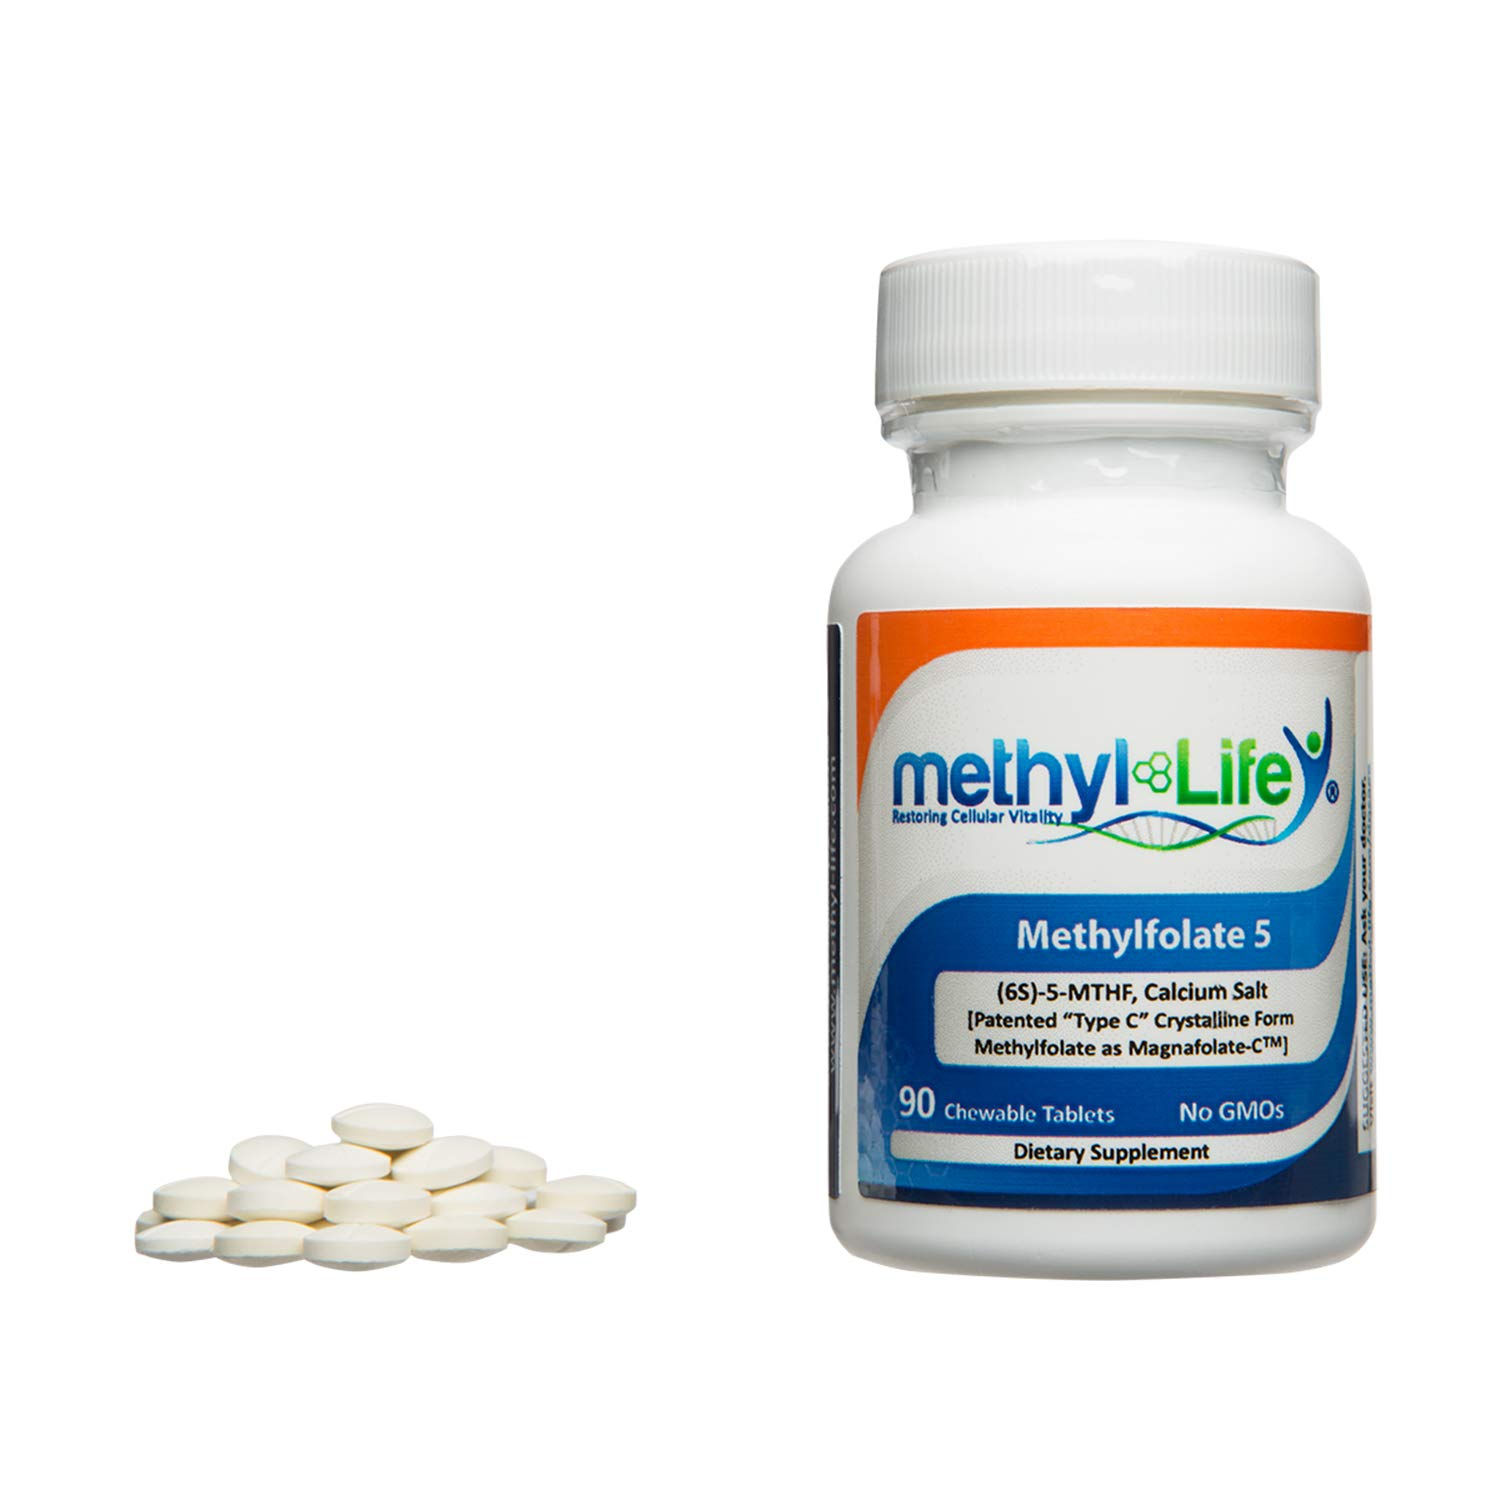 L-Methylfolate 5 - (6S)-5-MTHF, Calcium Salt (5,000 mcg per Tablet) - [90 Non-GMO, Chewable Tablets] by Methyl-Life Supplements